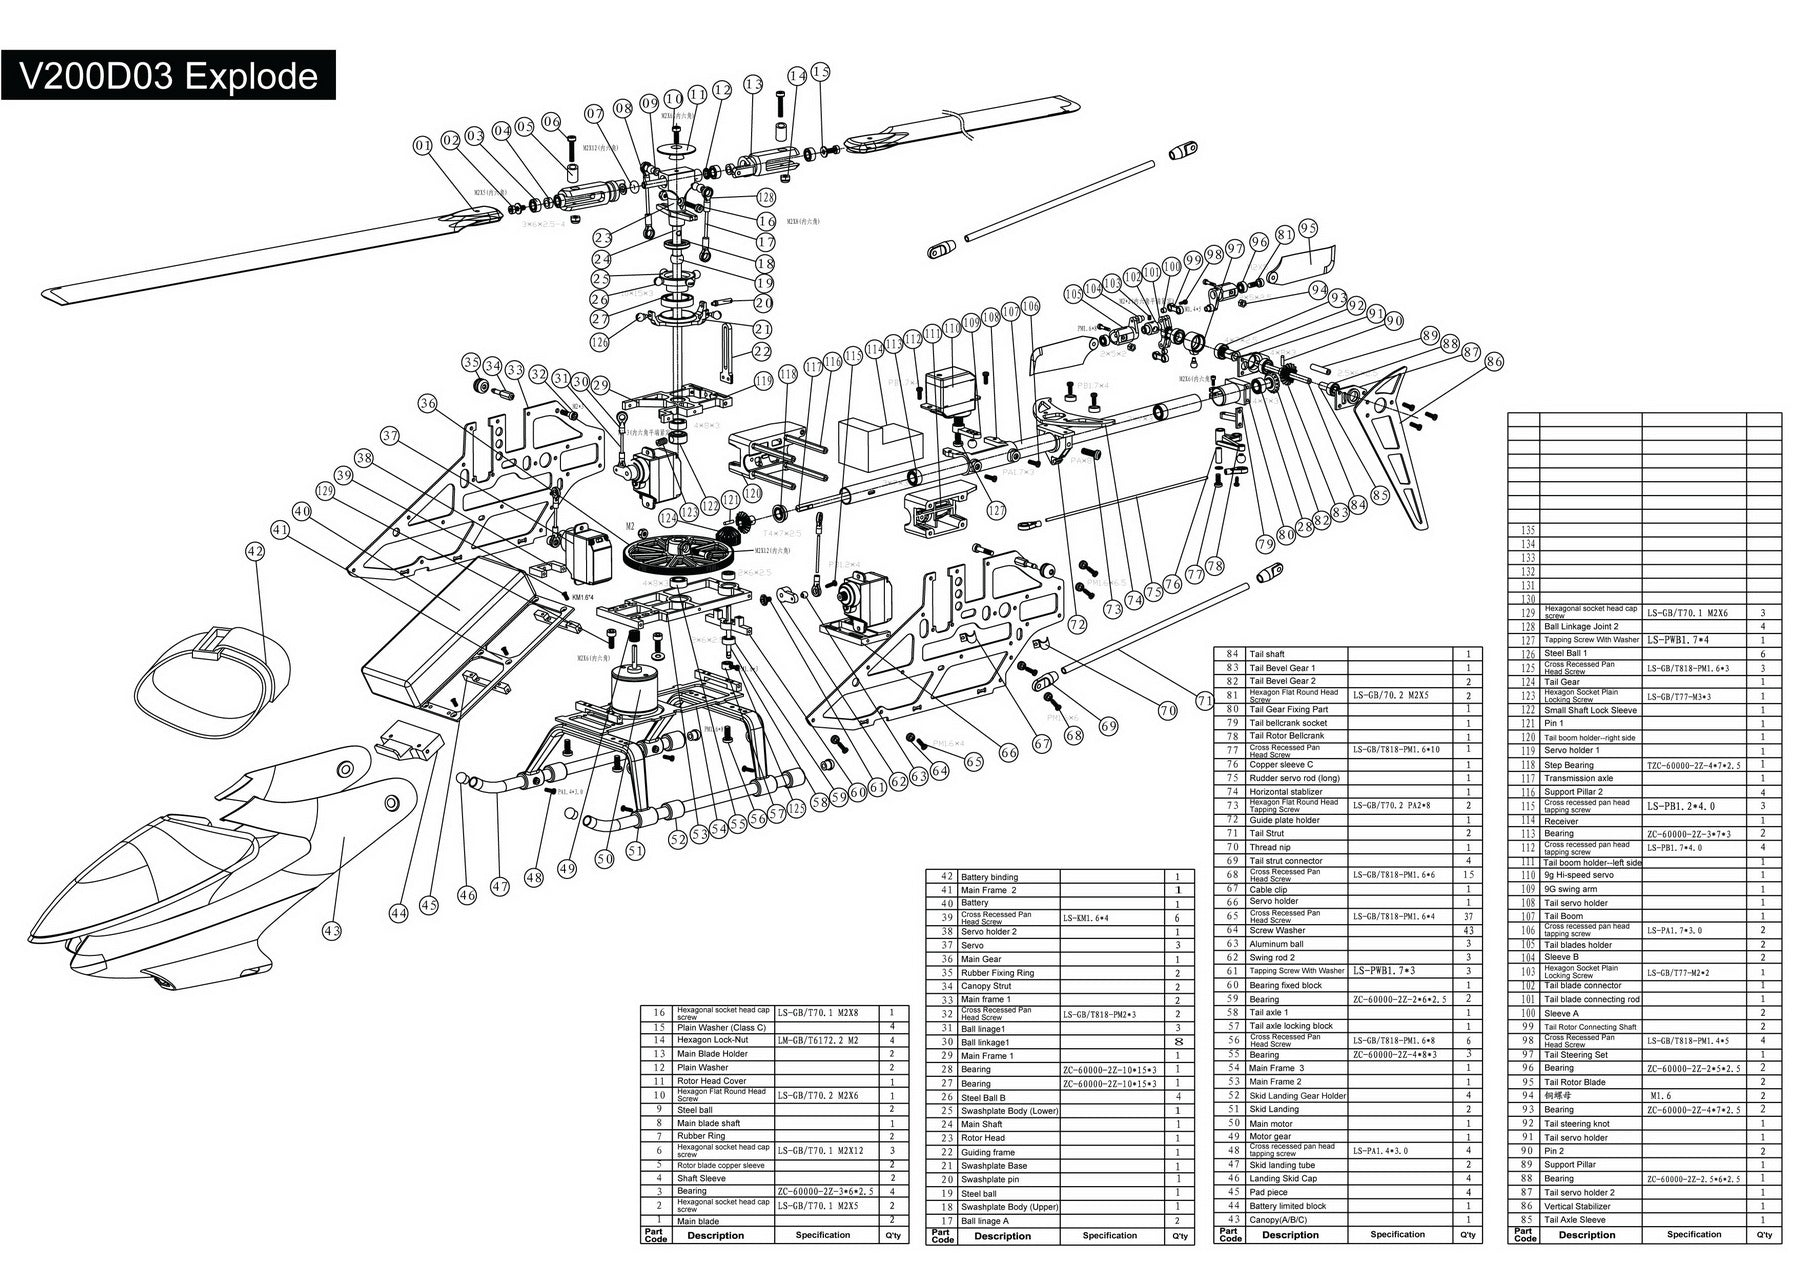 Helicopter Parts Diagram Explore Schematic Wiring Blade 450 3d Rc Free Engine Image For Walkera Receiver Get About Boby Rotor